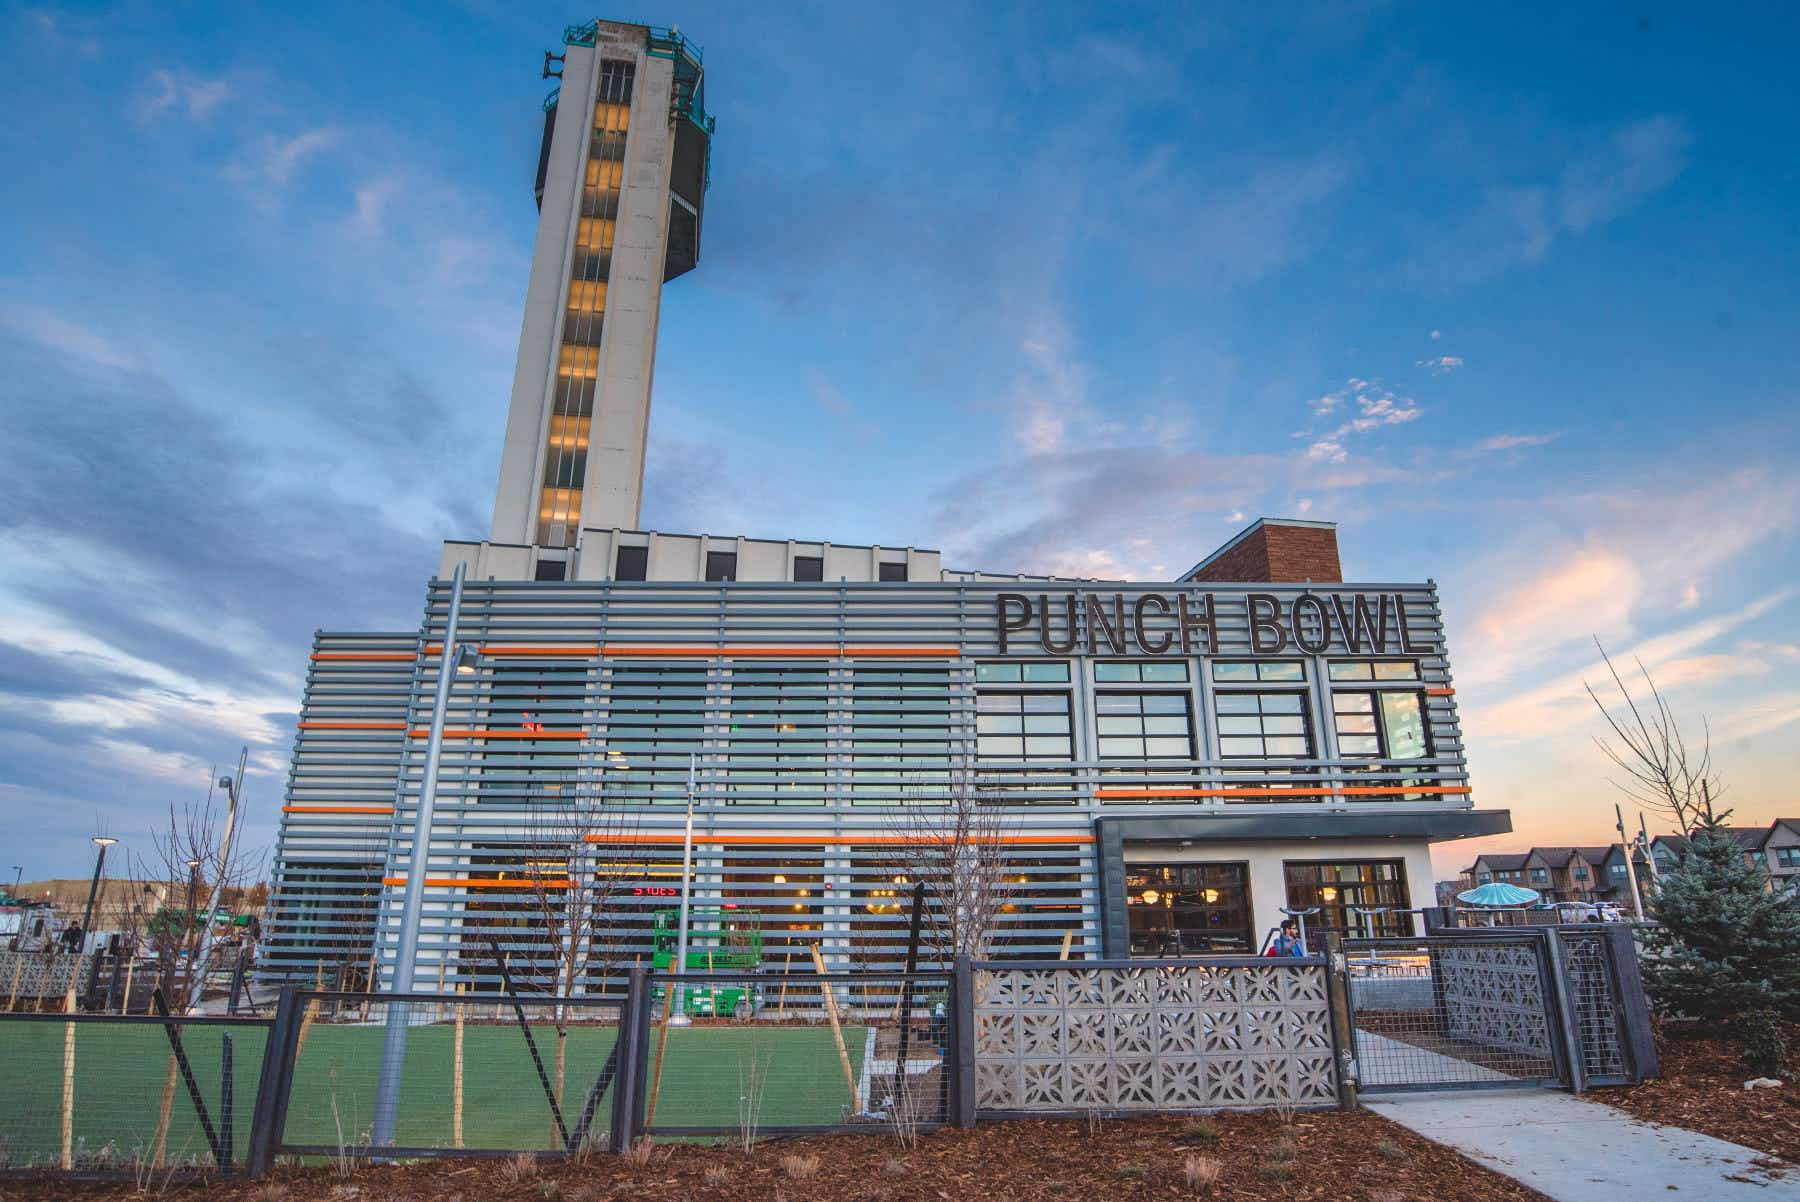 You can now dine in a renovated airport control tower in Denver